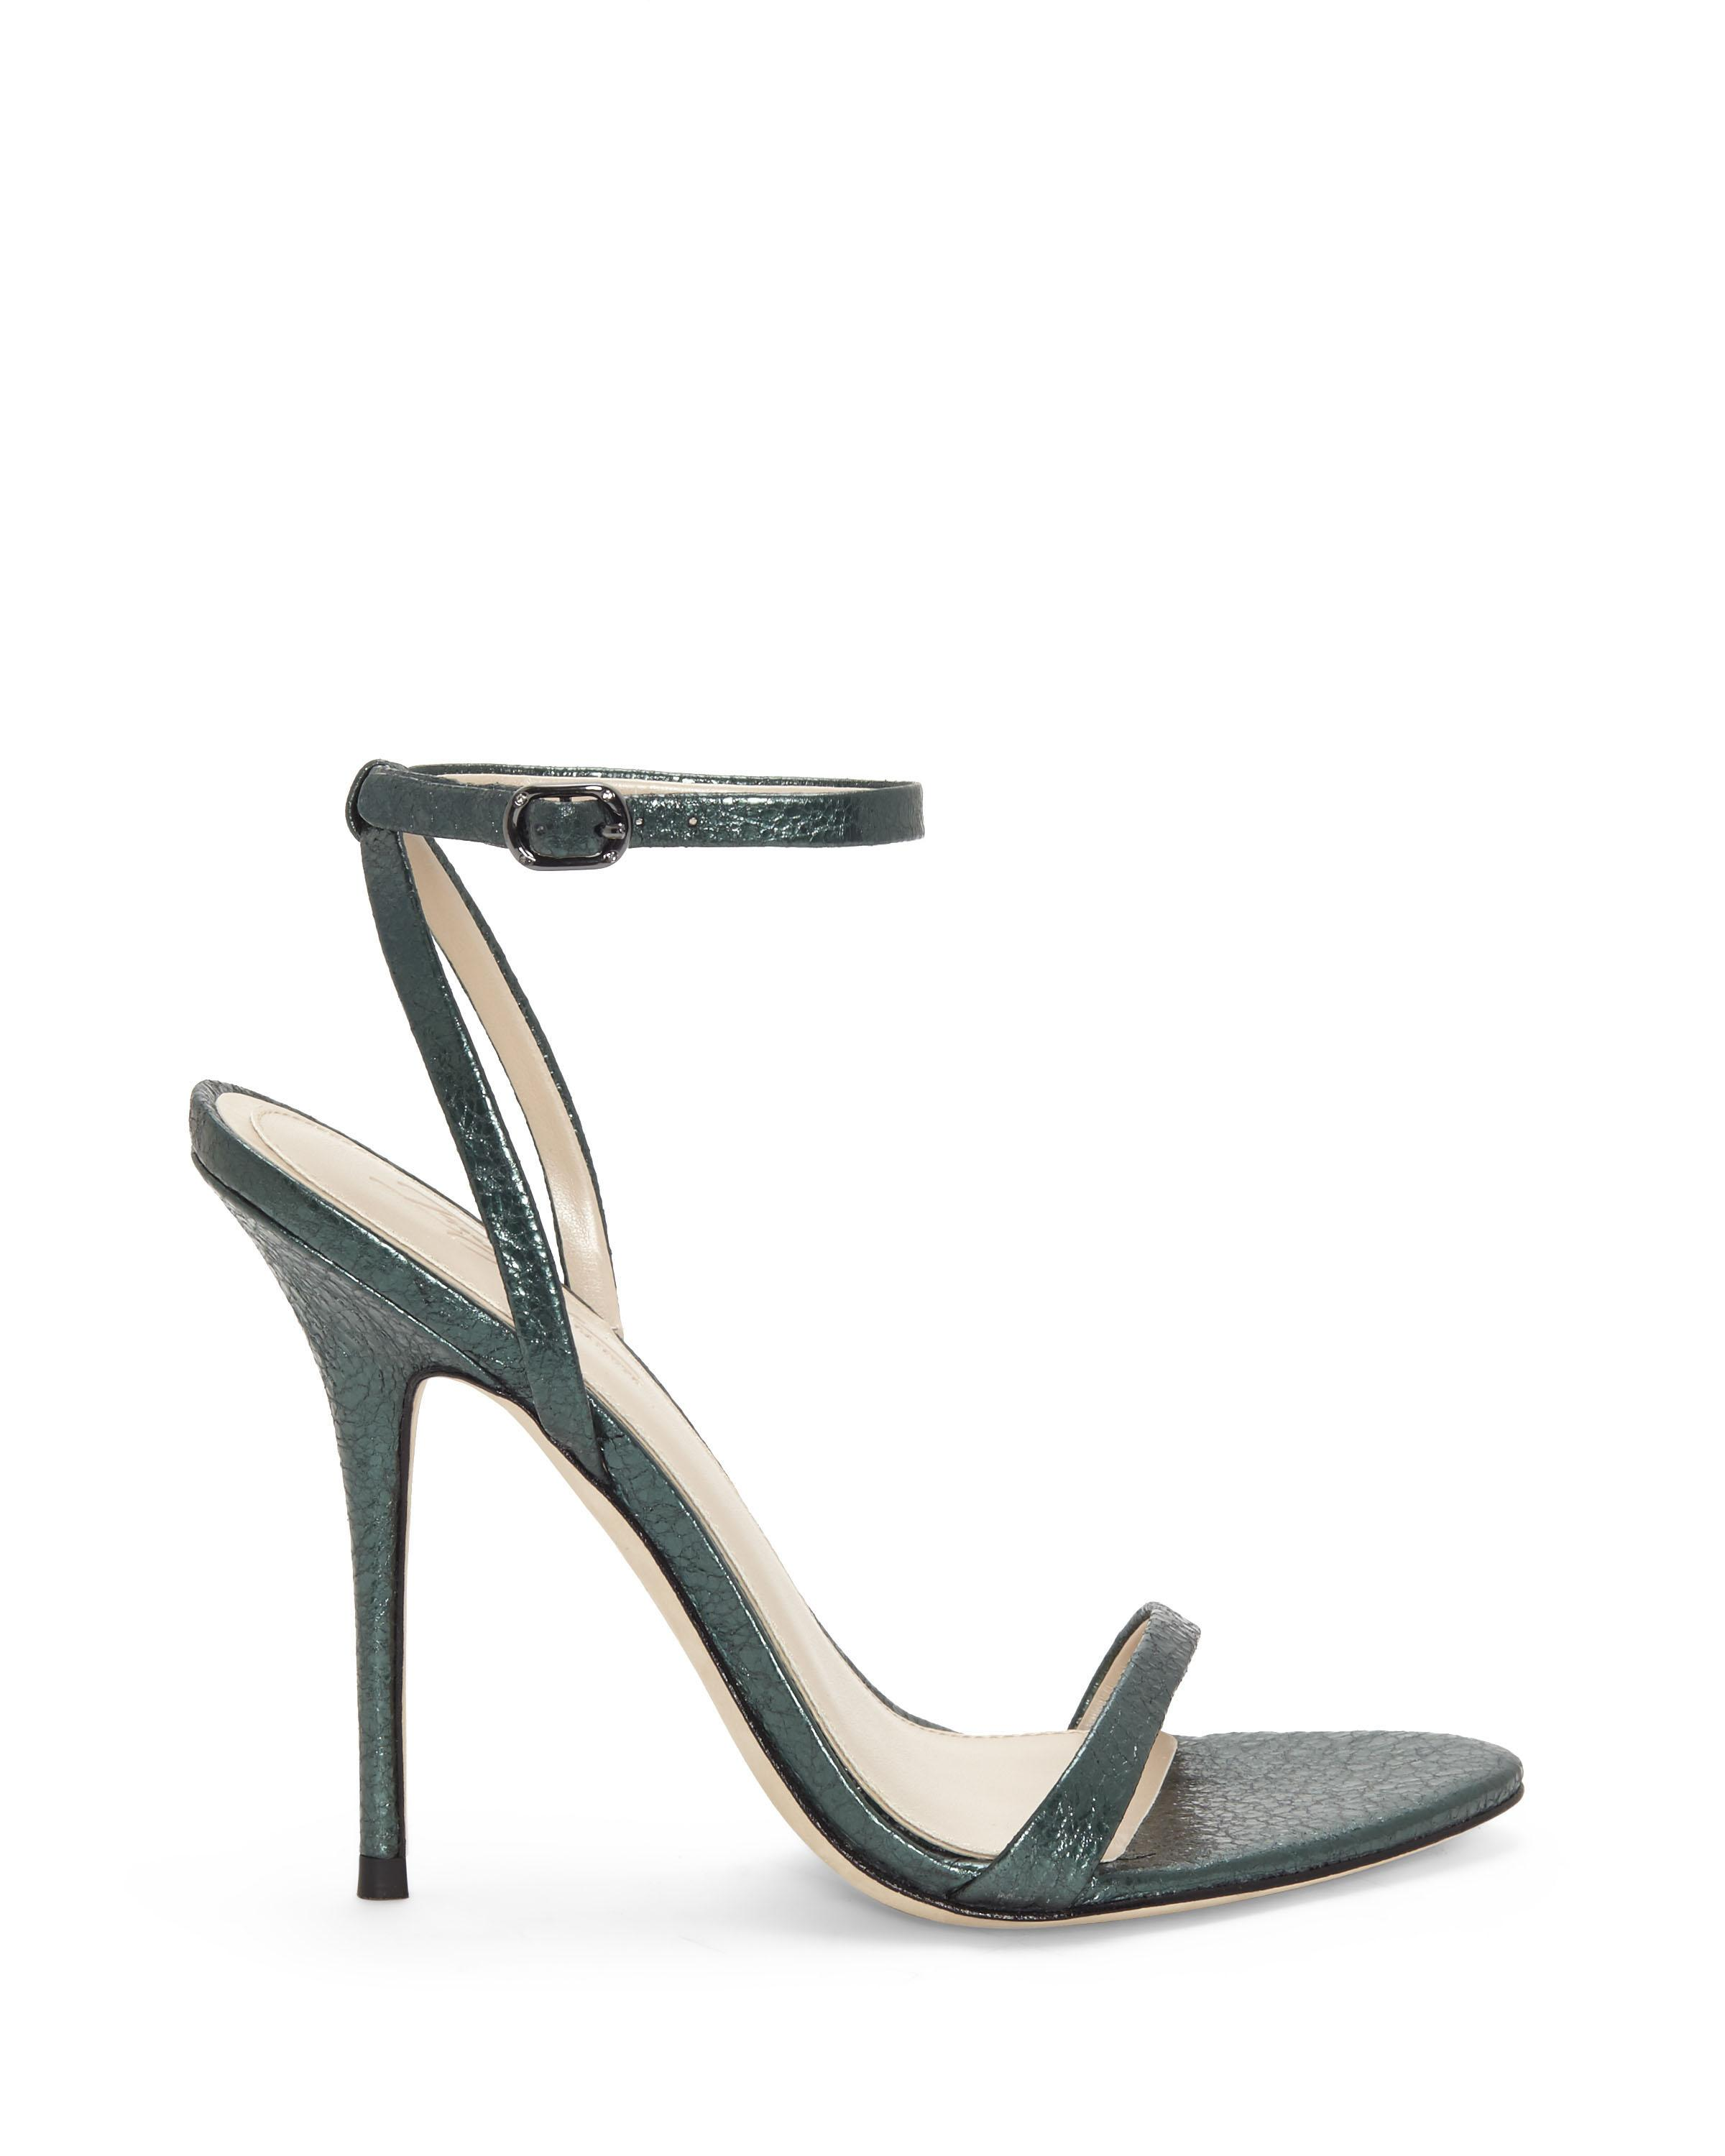 Vince Camuto Imagine Vince Camuto Raim2 Metallic Strappy Dress Sandals YwGGV